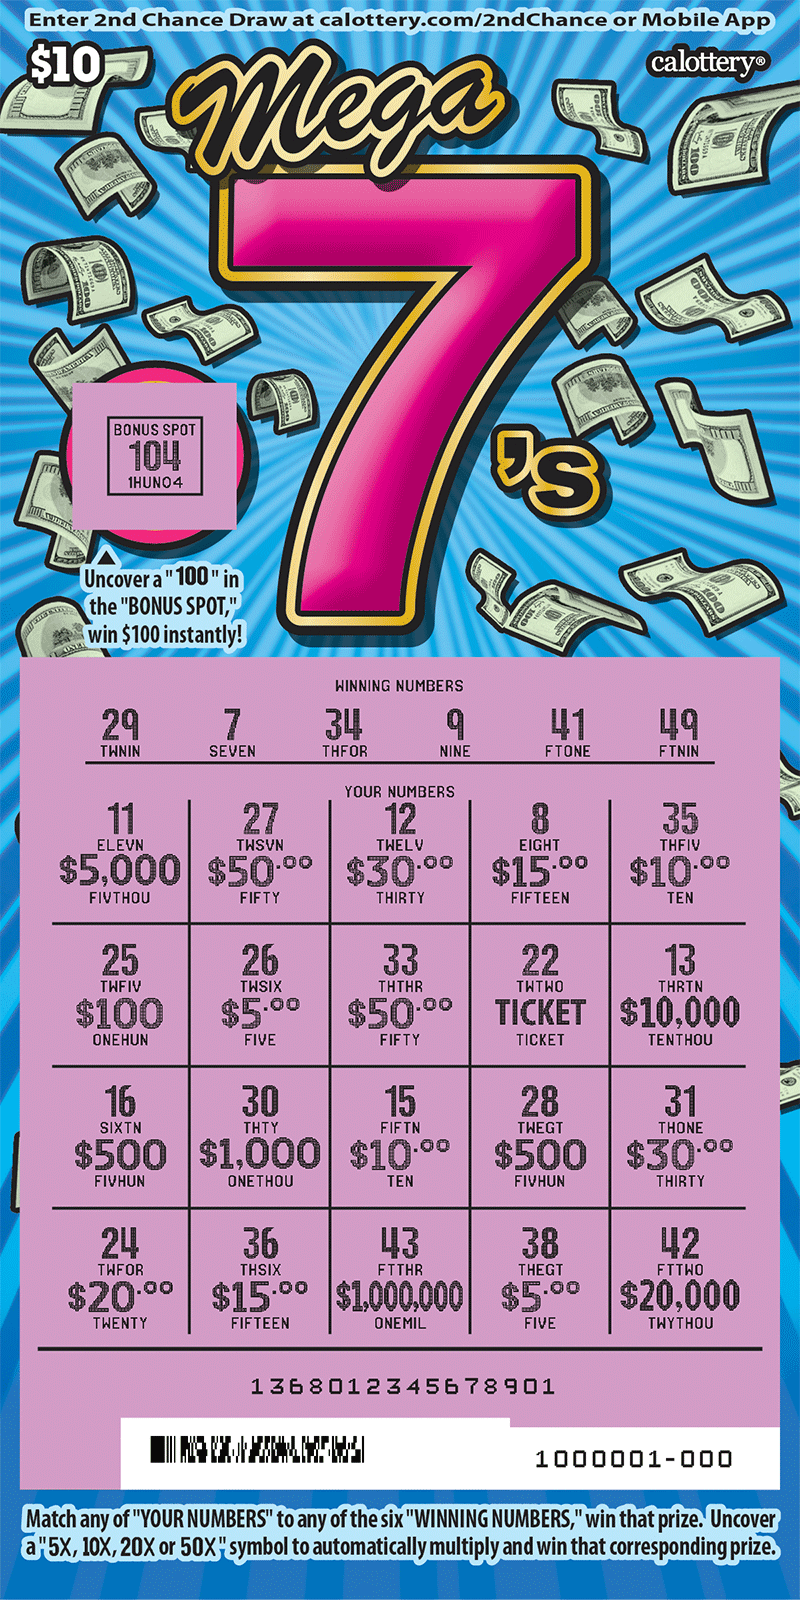 $10 Mega 7s scratched ticket